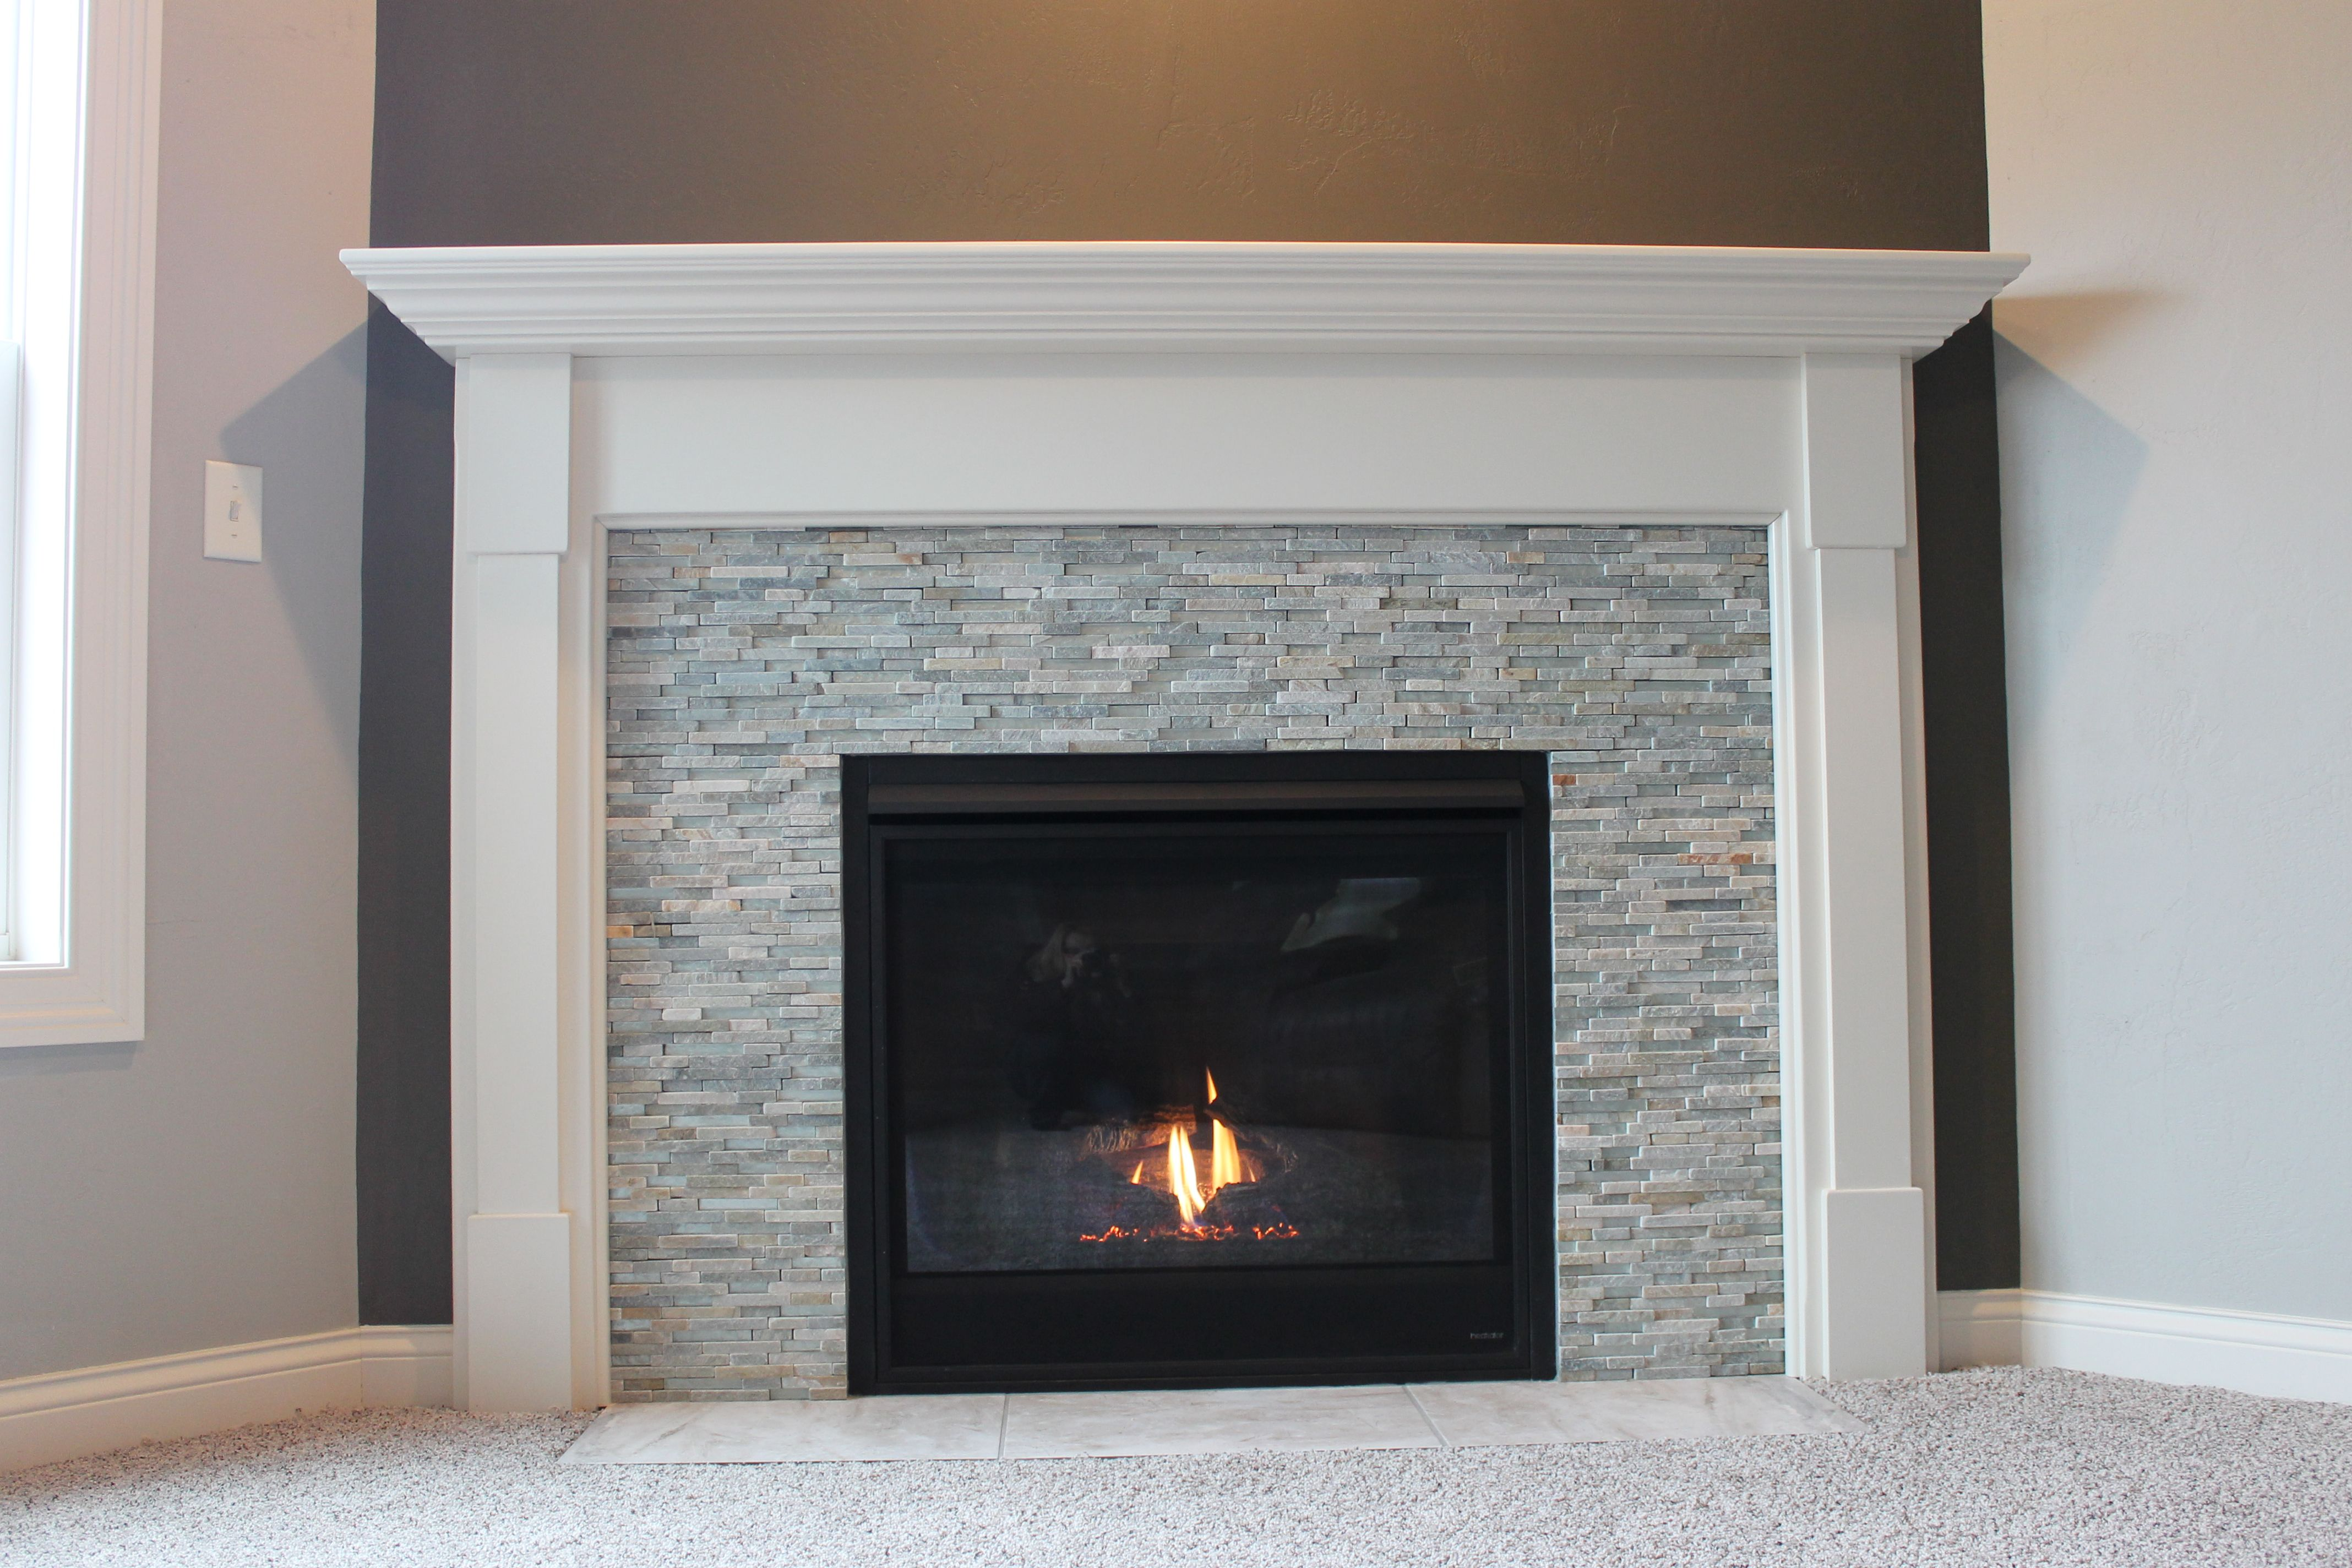 Superbe Stylish Tile Options For Your Fireplace Surround #fireplace #tile #ideas